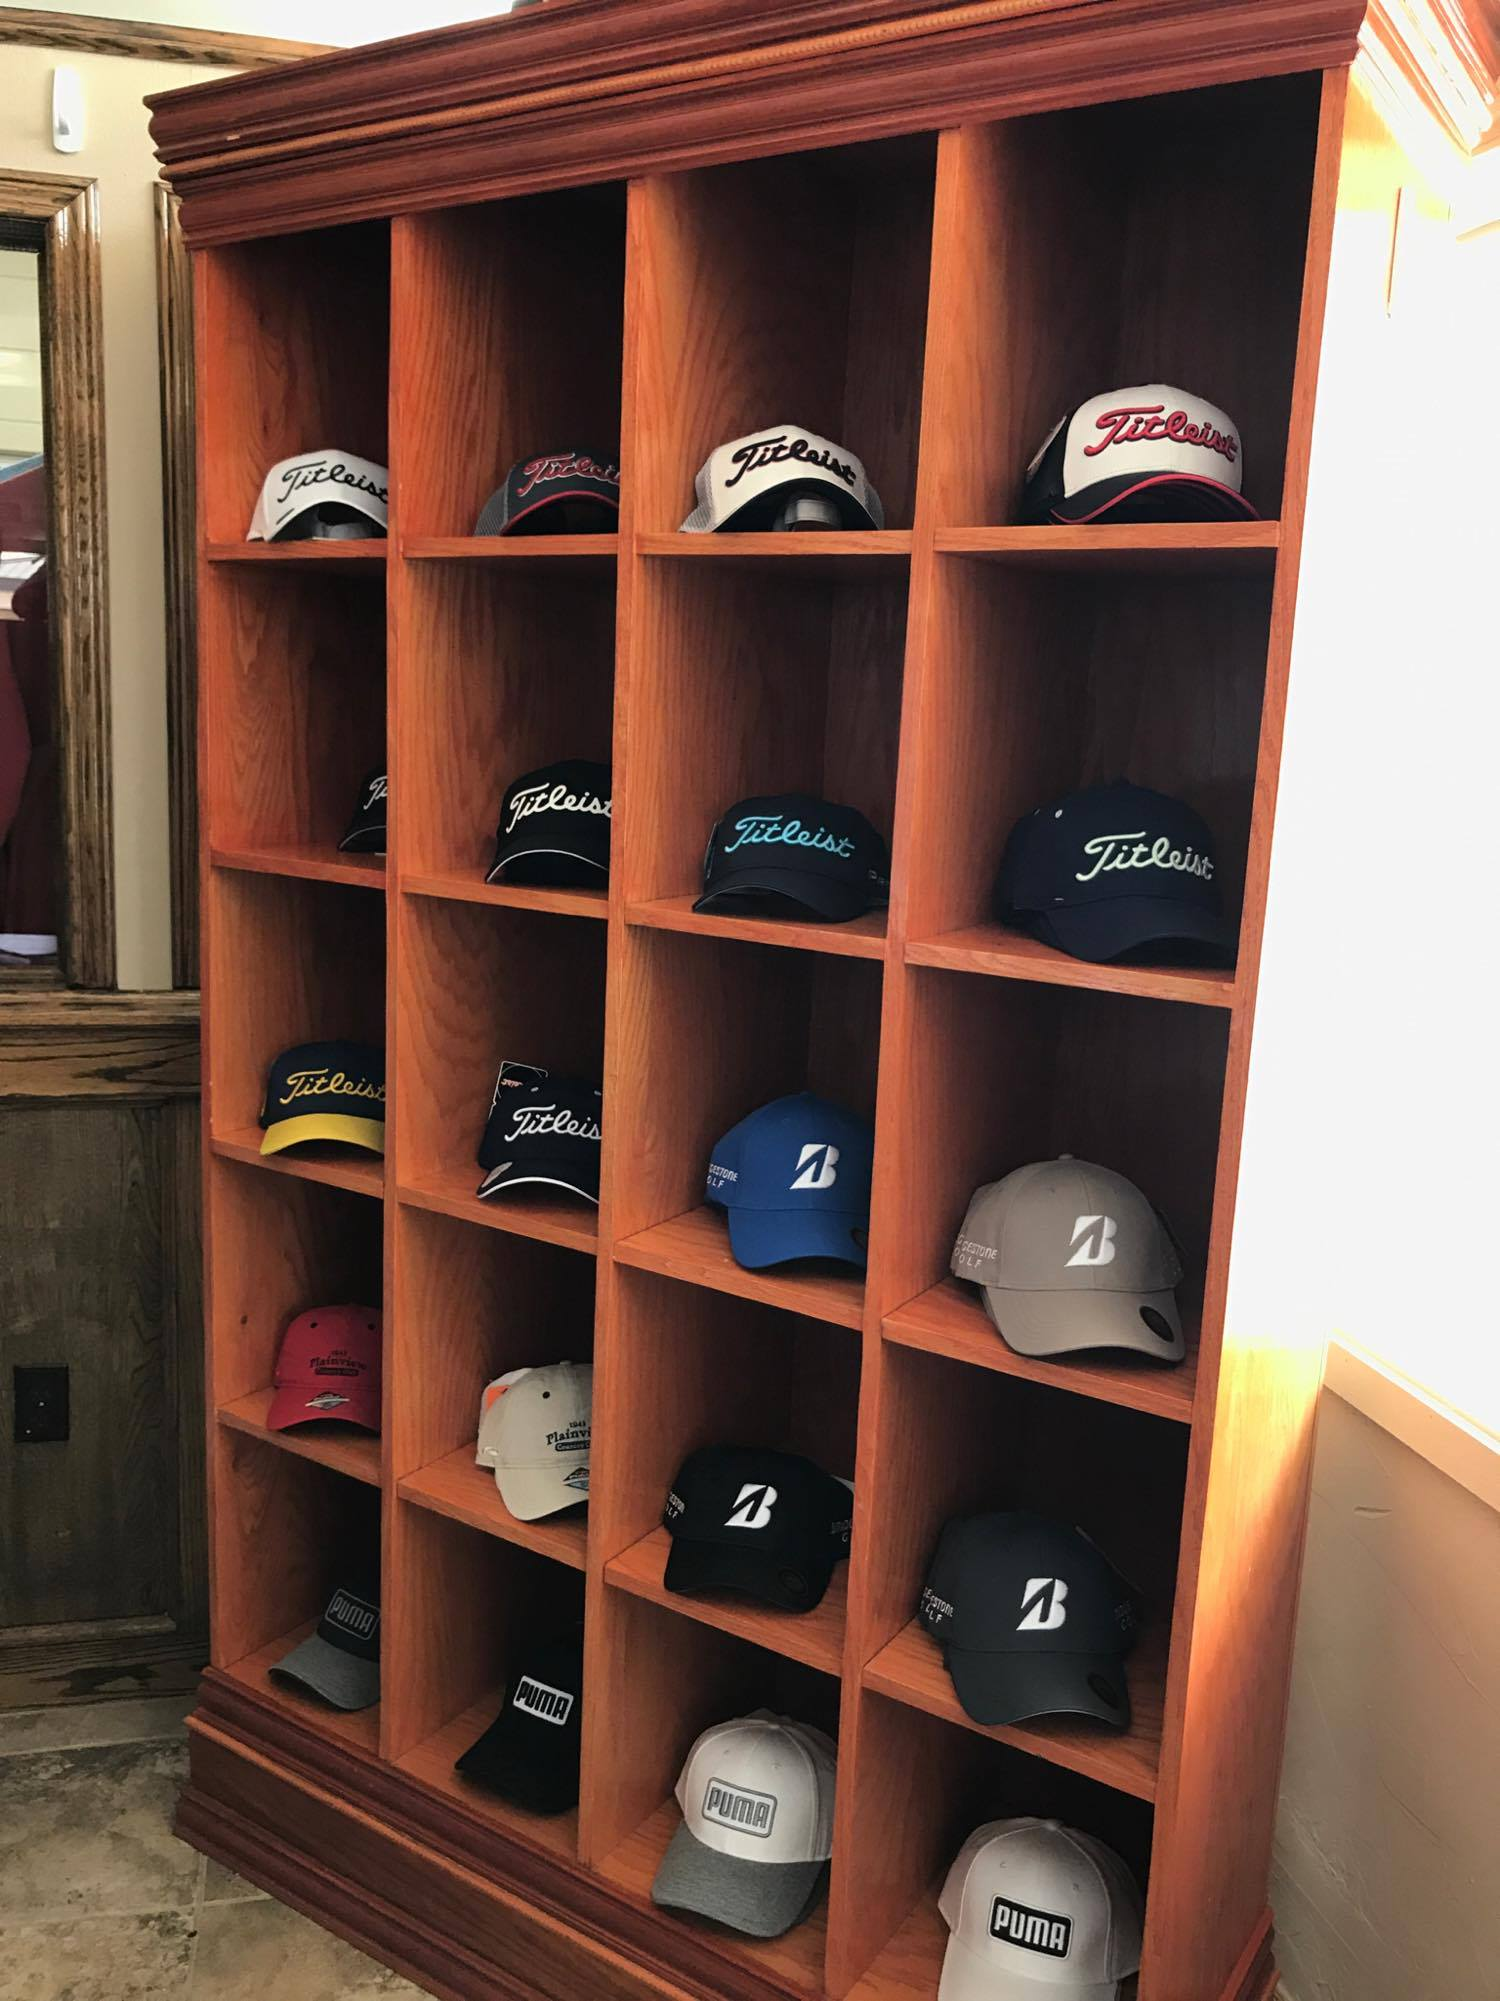 Get your hats here!